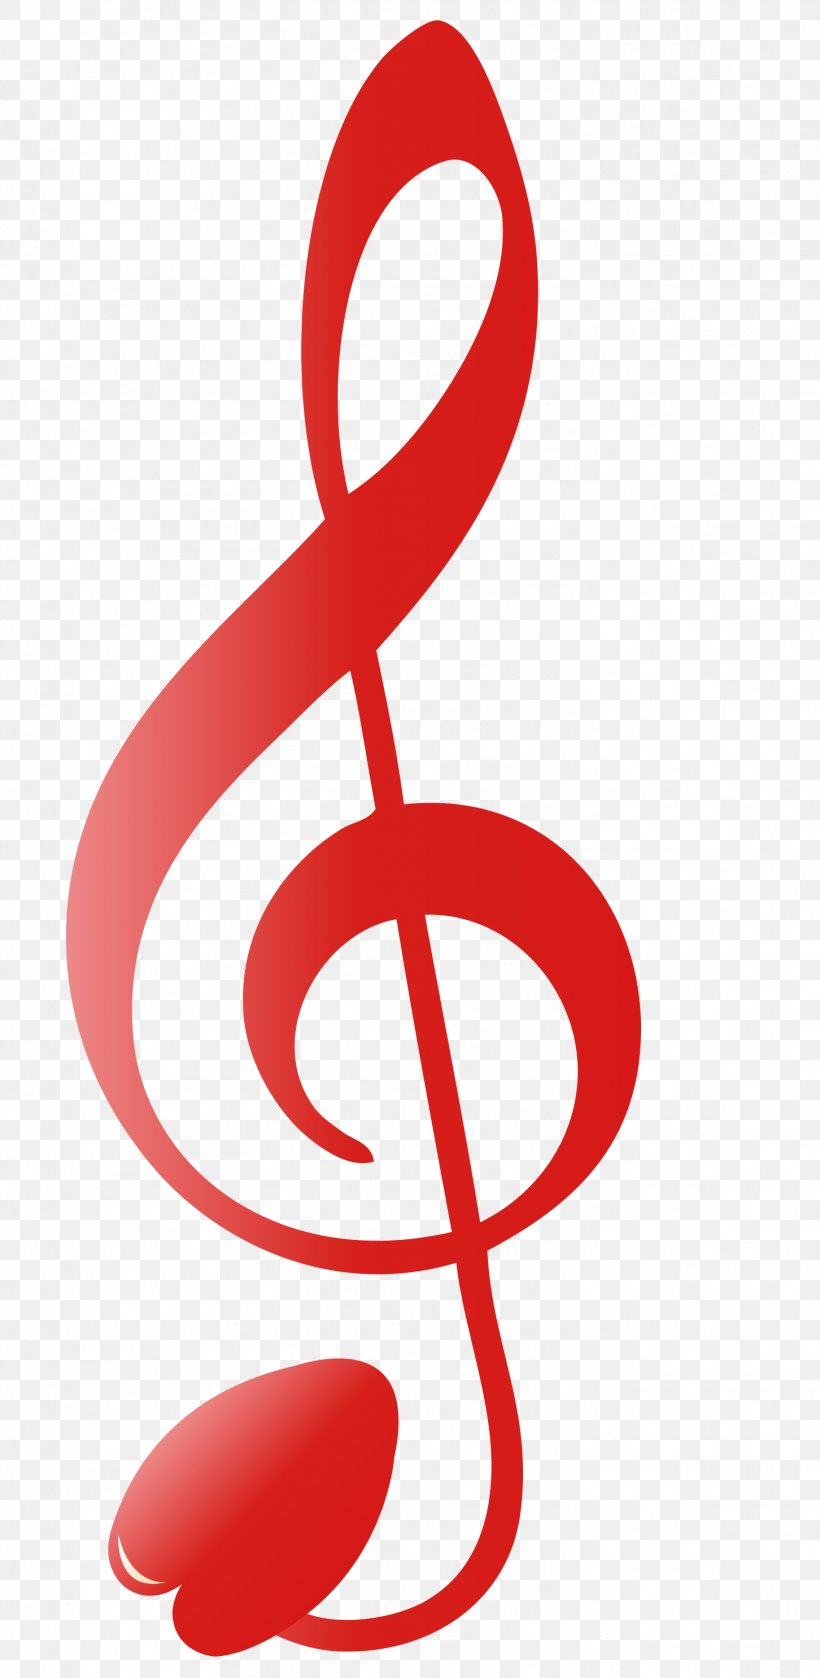 Clef Musical Note Treble Sol Anahtaru0131, PNG, 1452x2973px, Watercolor, Cartoon, Flower, Frame, Heart Download Free